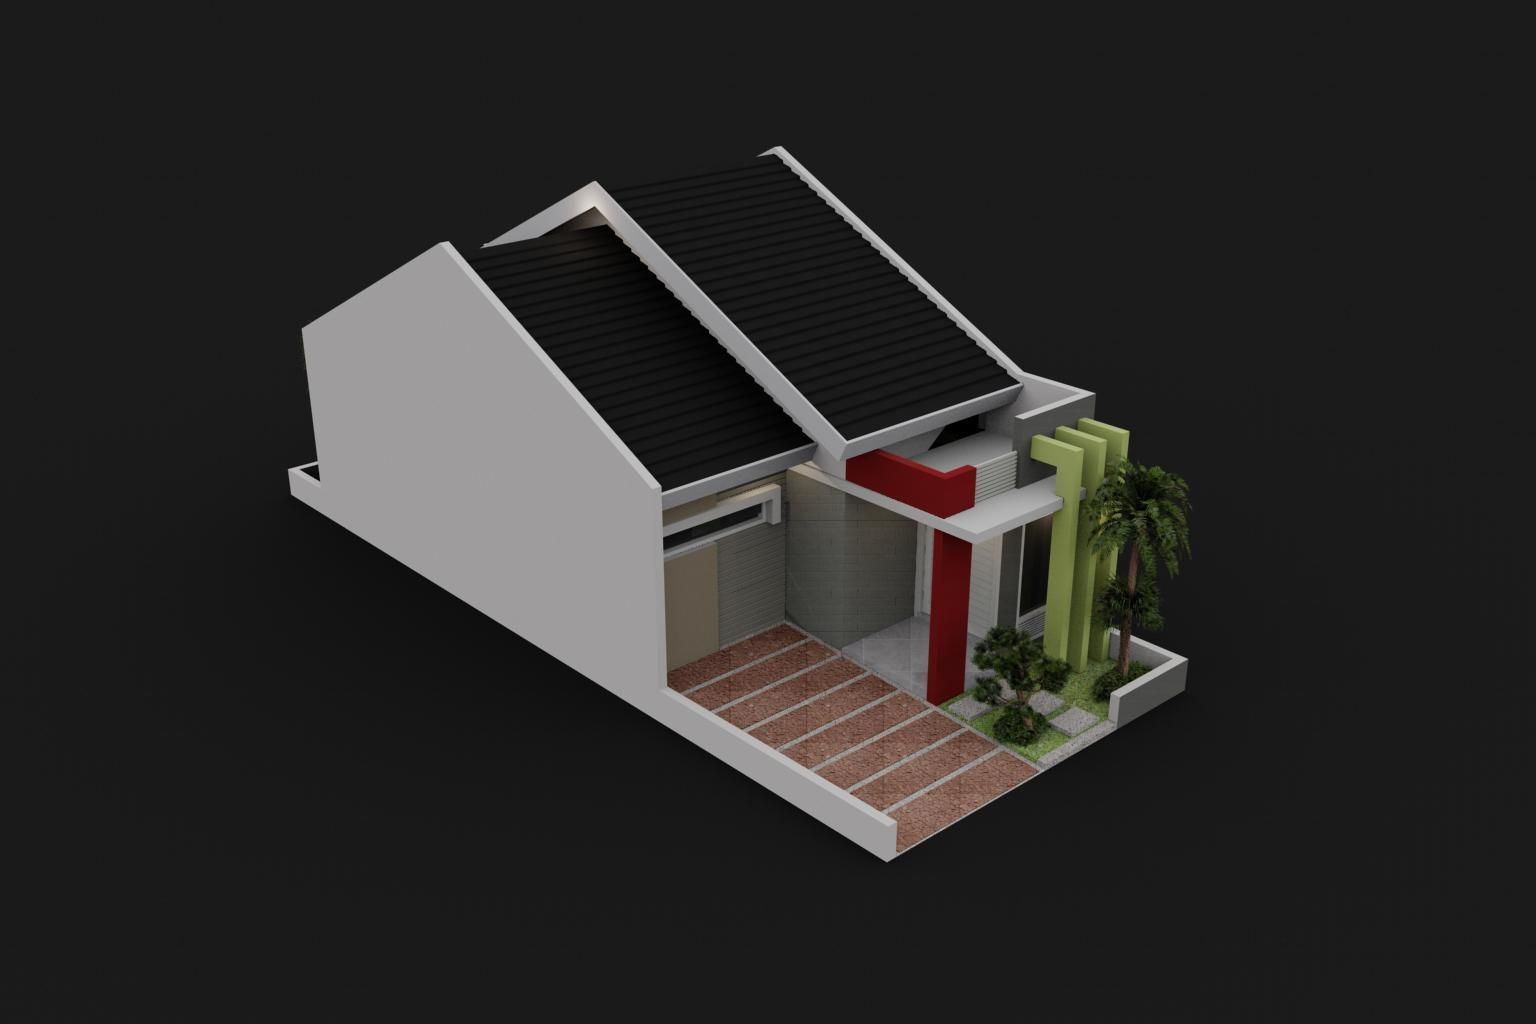 Small house design 3d model max for New model small house